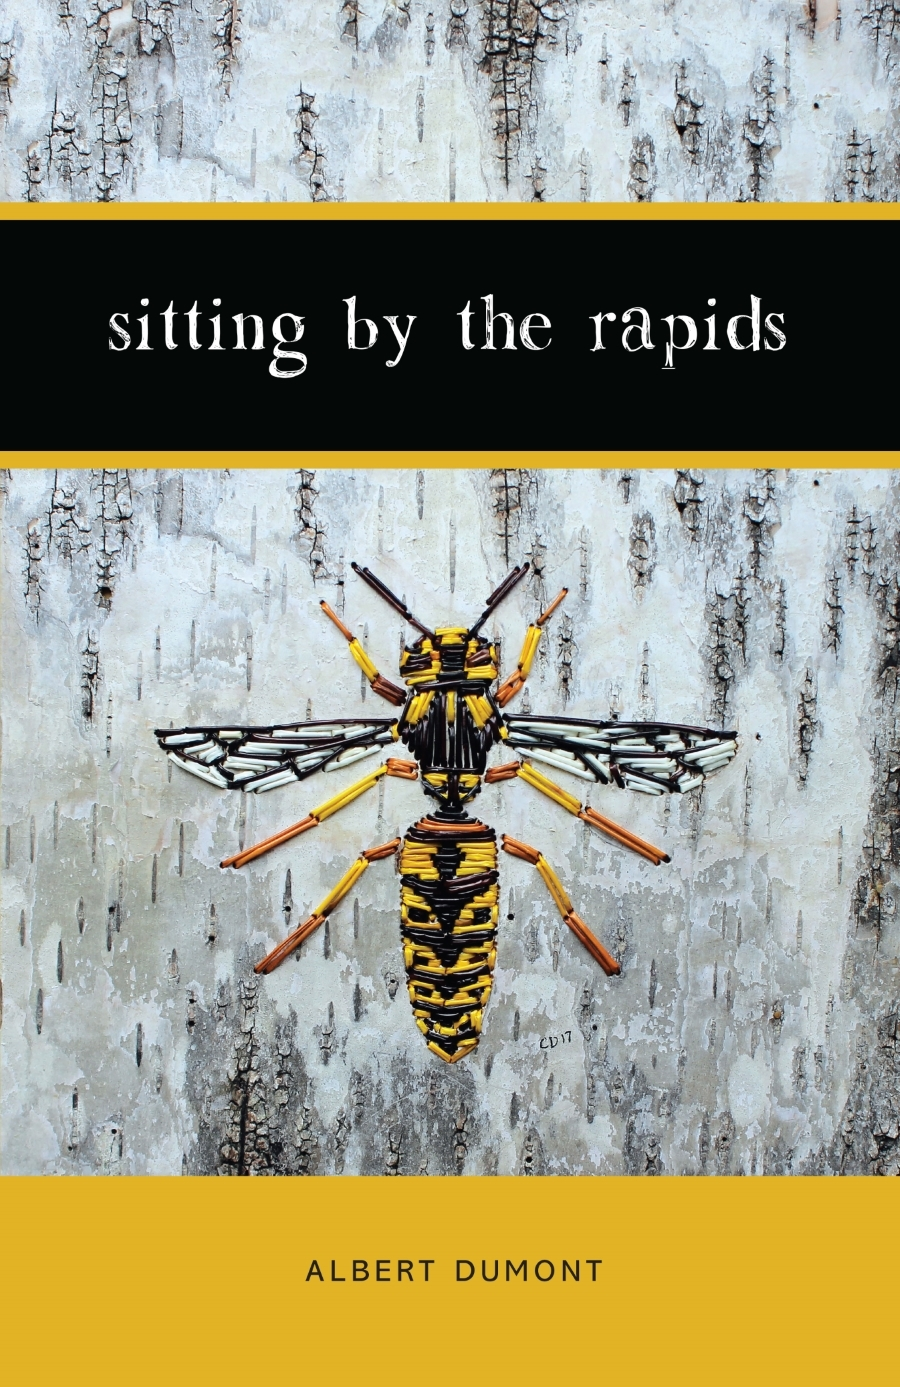 Cover of the book, Sitting by the Rapids, by Albert Dumont